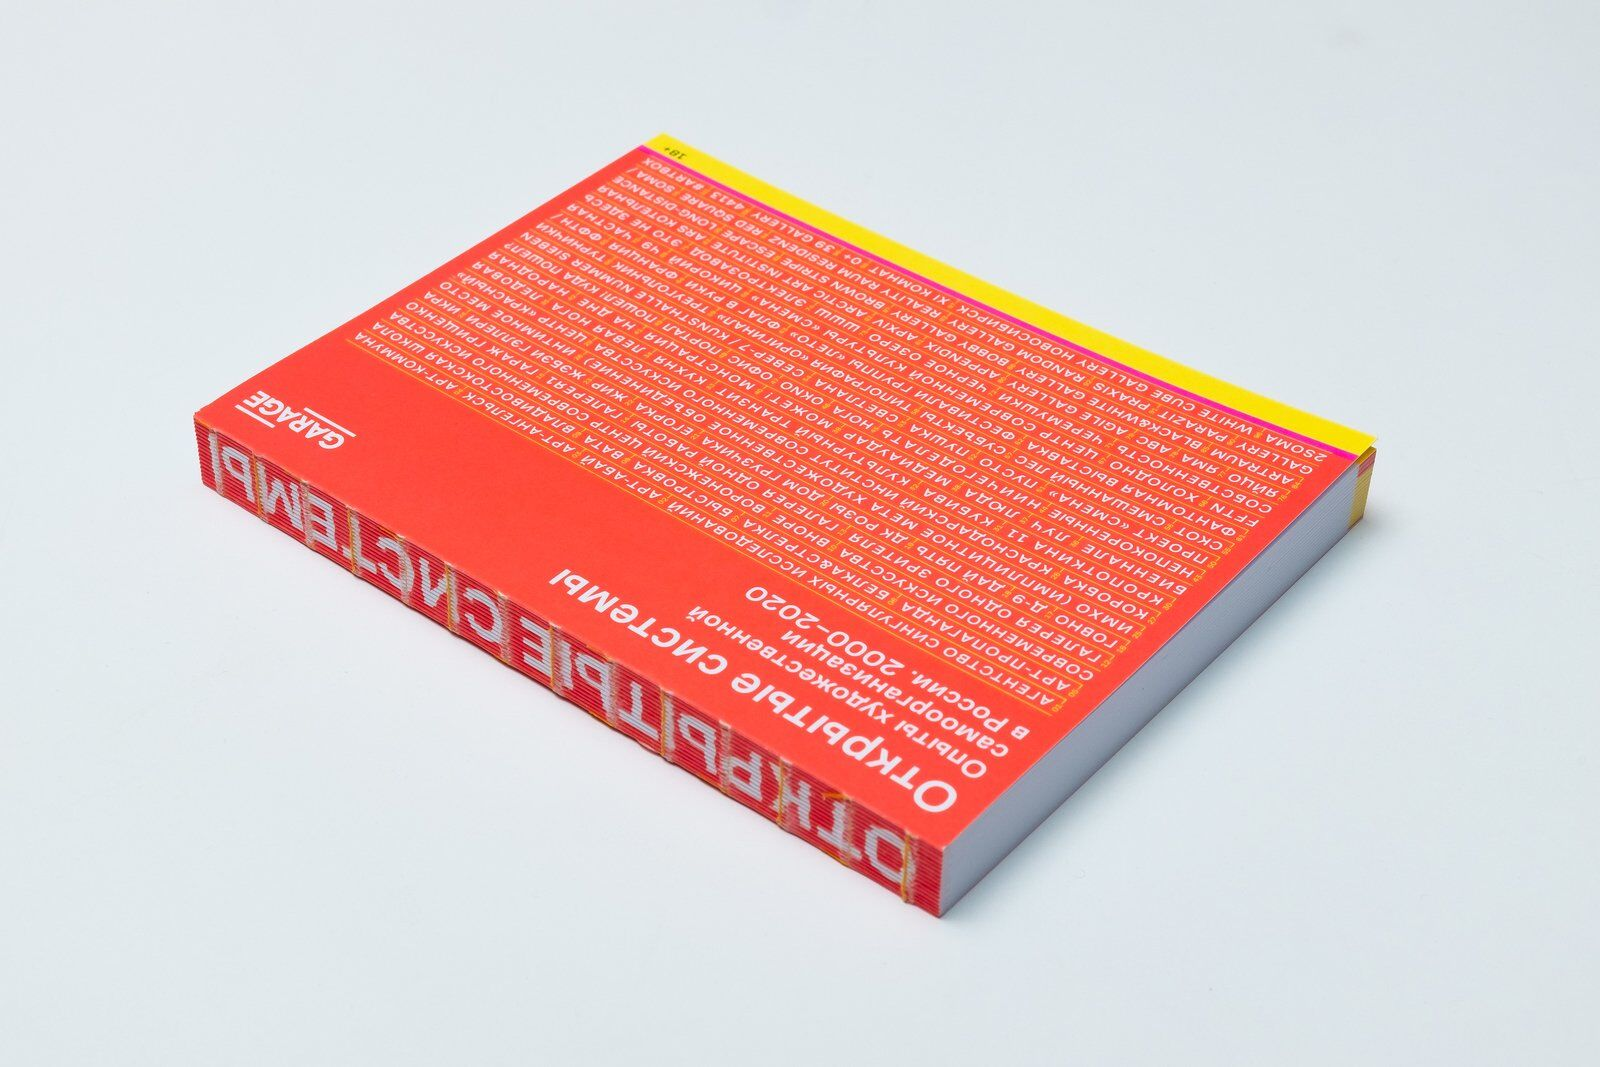 Book review. Trubitsyna AU (2020).Open Systems: Self-Organized Art Initiatives in Russia, 2000–2020